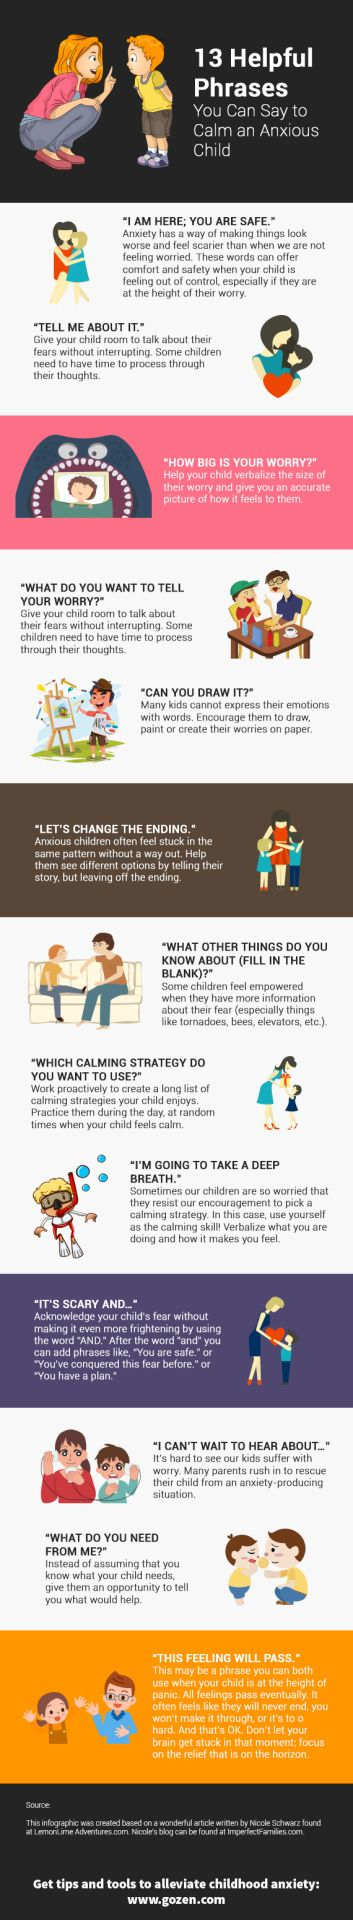 "momsanddads: ""Let's change the ending."" Source: http://www.gozen.com/try-these-13-phrases-to-calm-your-anxious-child/"